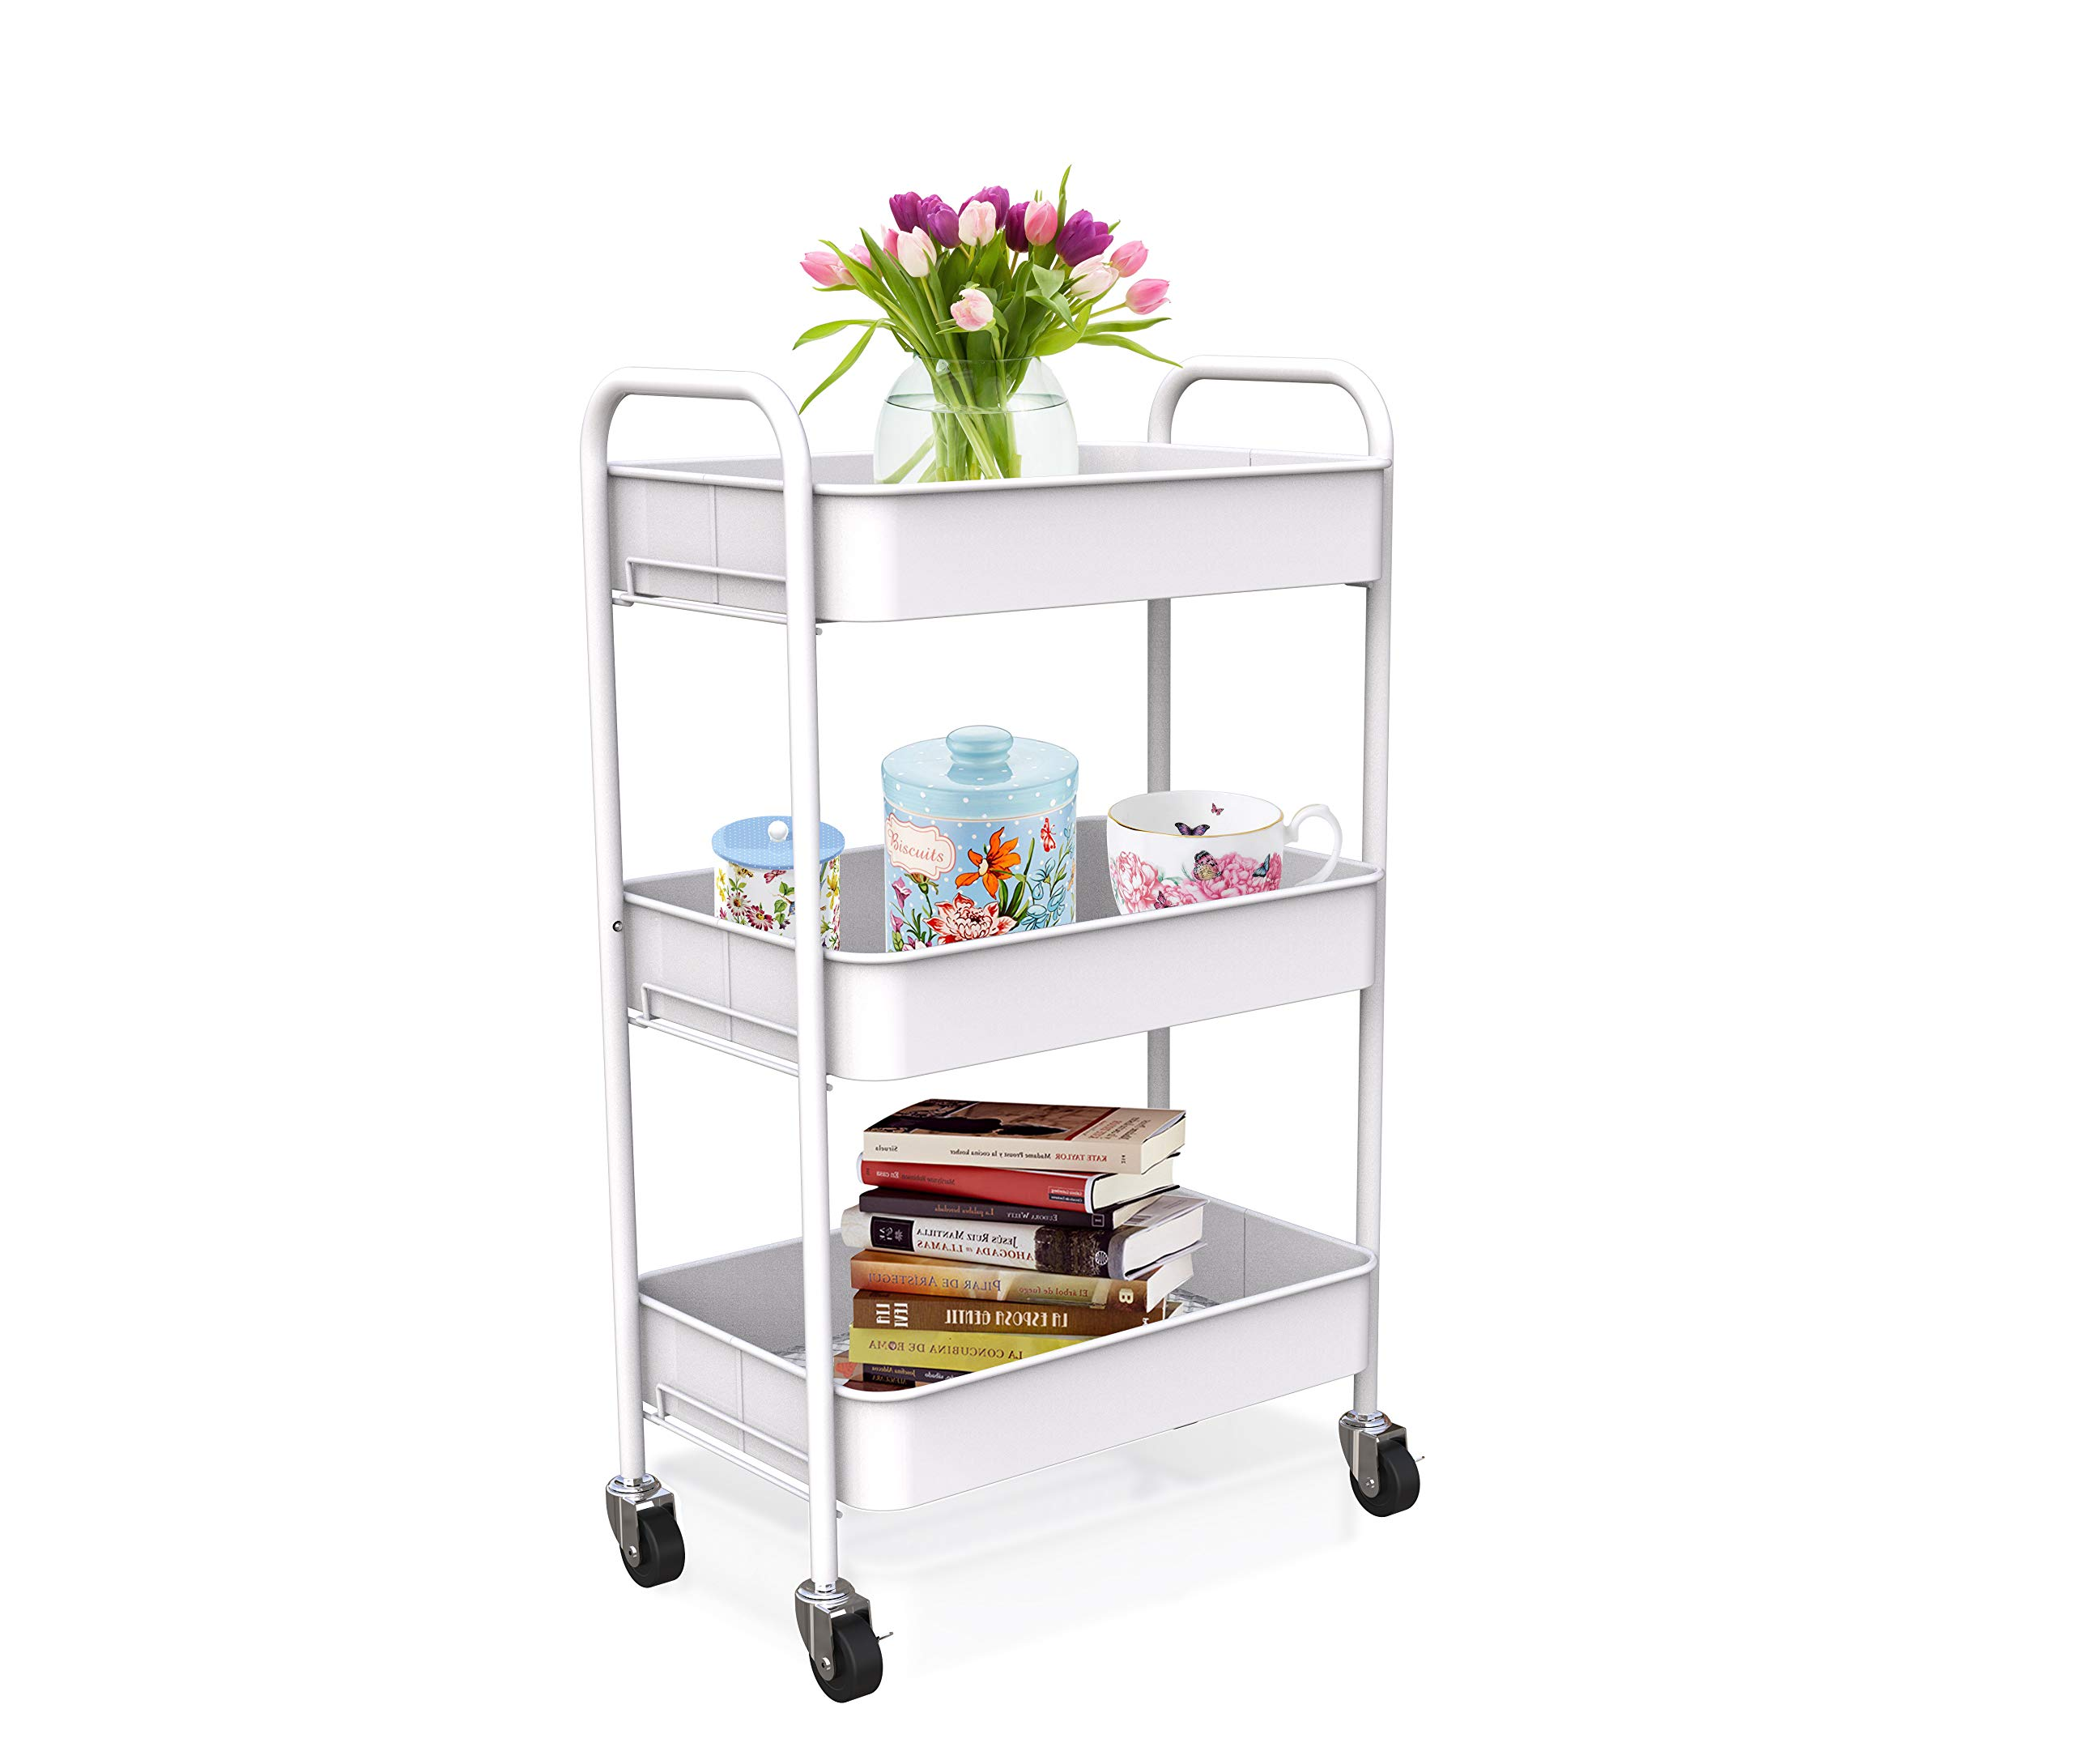 CAXXA 3-Tier Rolling Metal Storage Organizer - Mobile Utility Cart with Caster Wheels, White